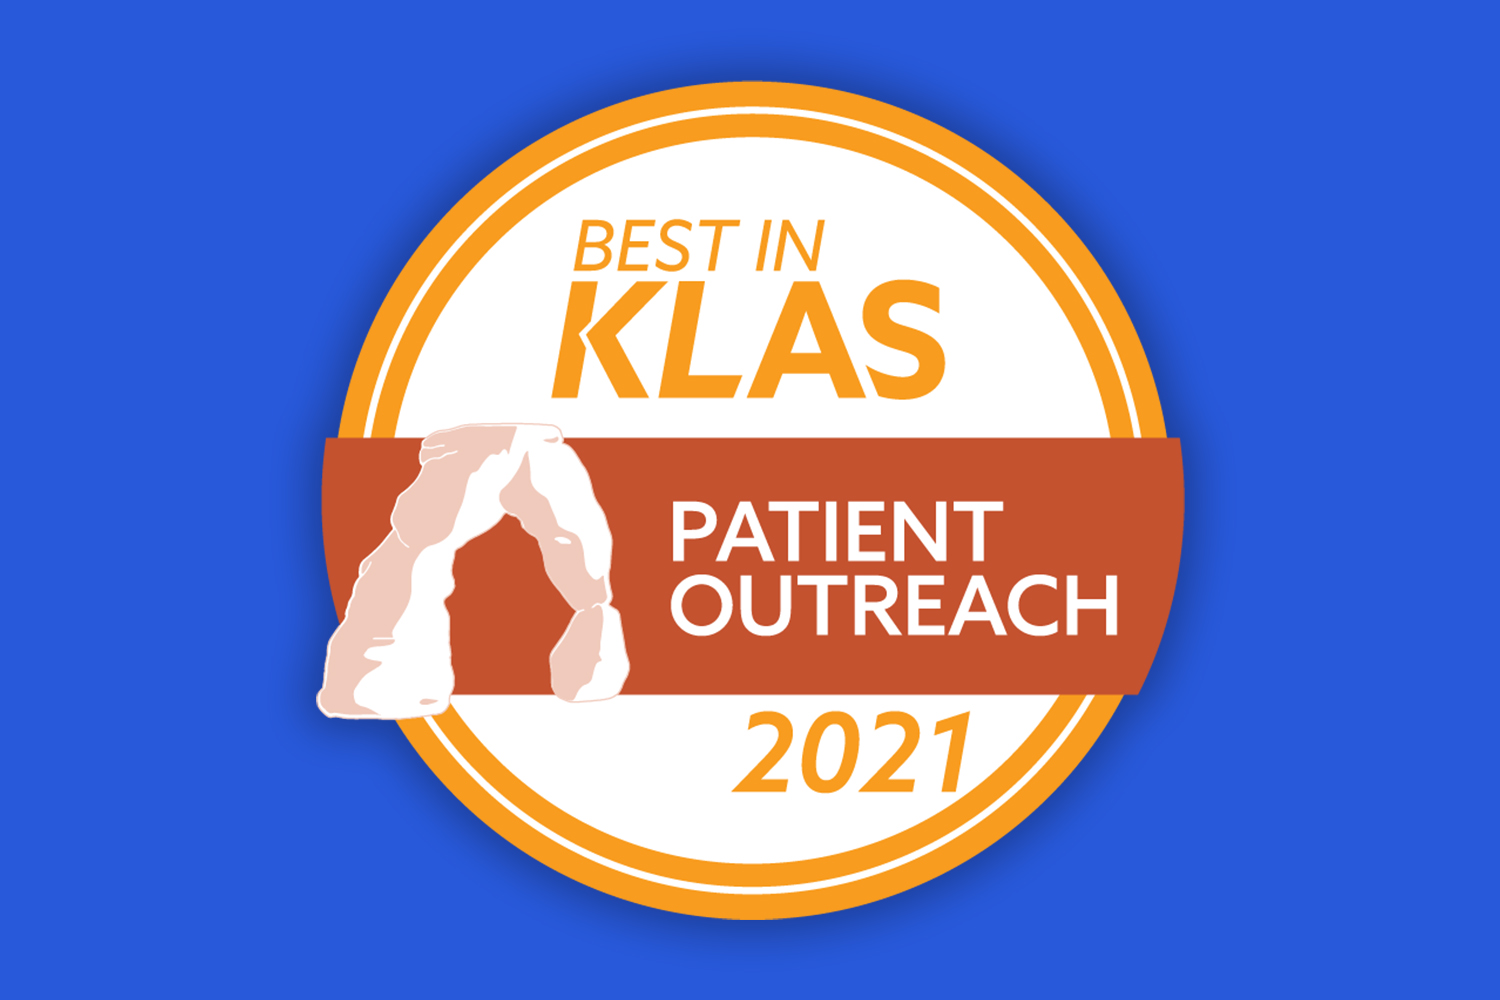 Thanks to Our Customers, WELL™ Health Earns 2021 Best in KLAS in Patient Outreach